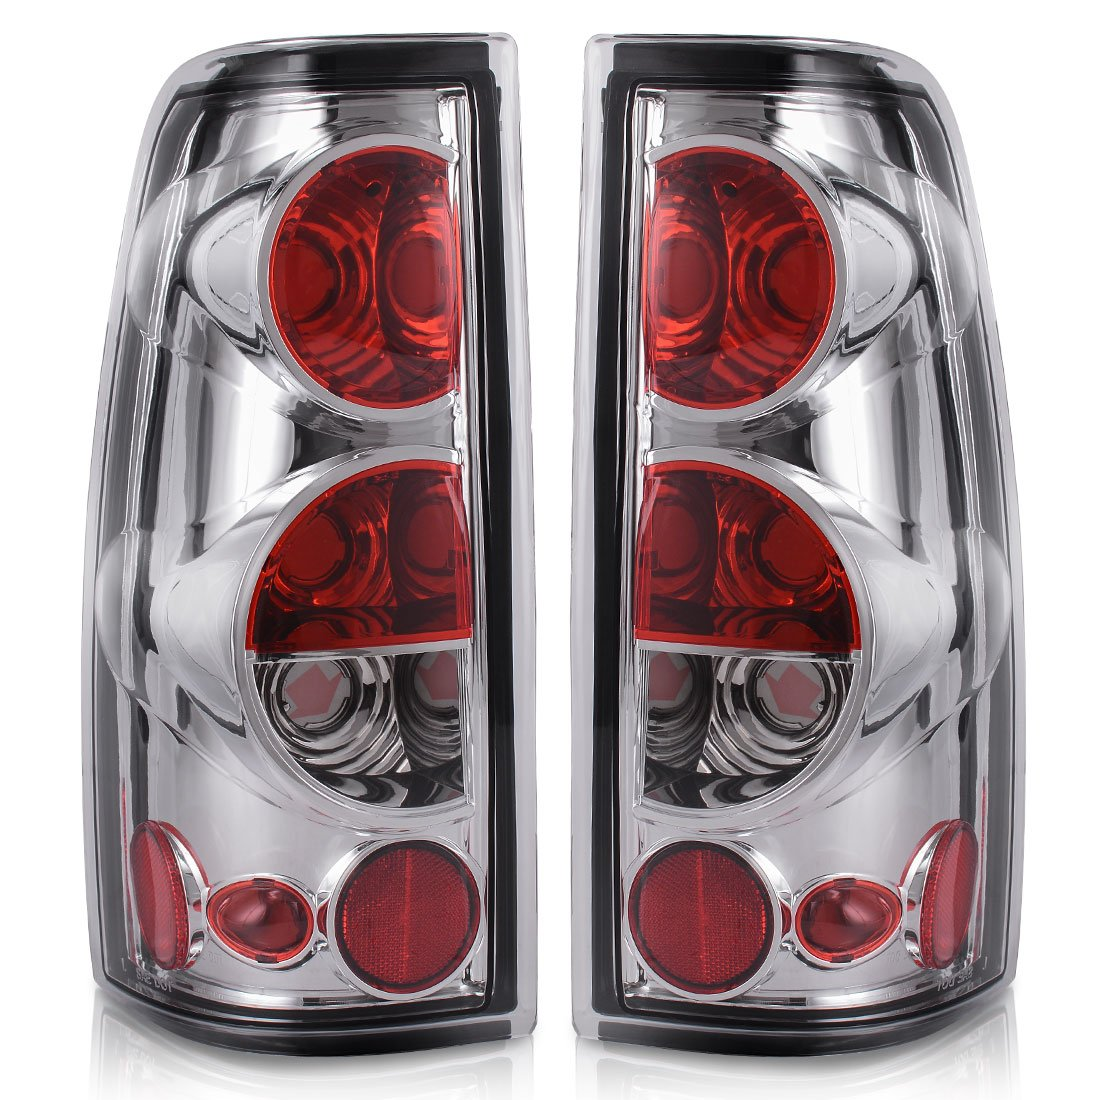 Taillights Tail Lamps For Chevy Chevrolet Silverado 1500 2500 3500 1999-2006 & 2007 with Classic Body Style GMC Sierra 1500 2500 3500 1999-2002 (Do Not Fit Barn Door/Stepside Models) AUTOSAVER88